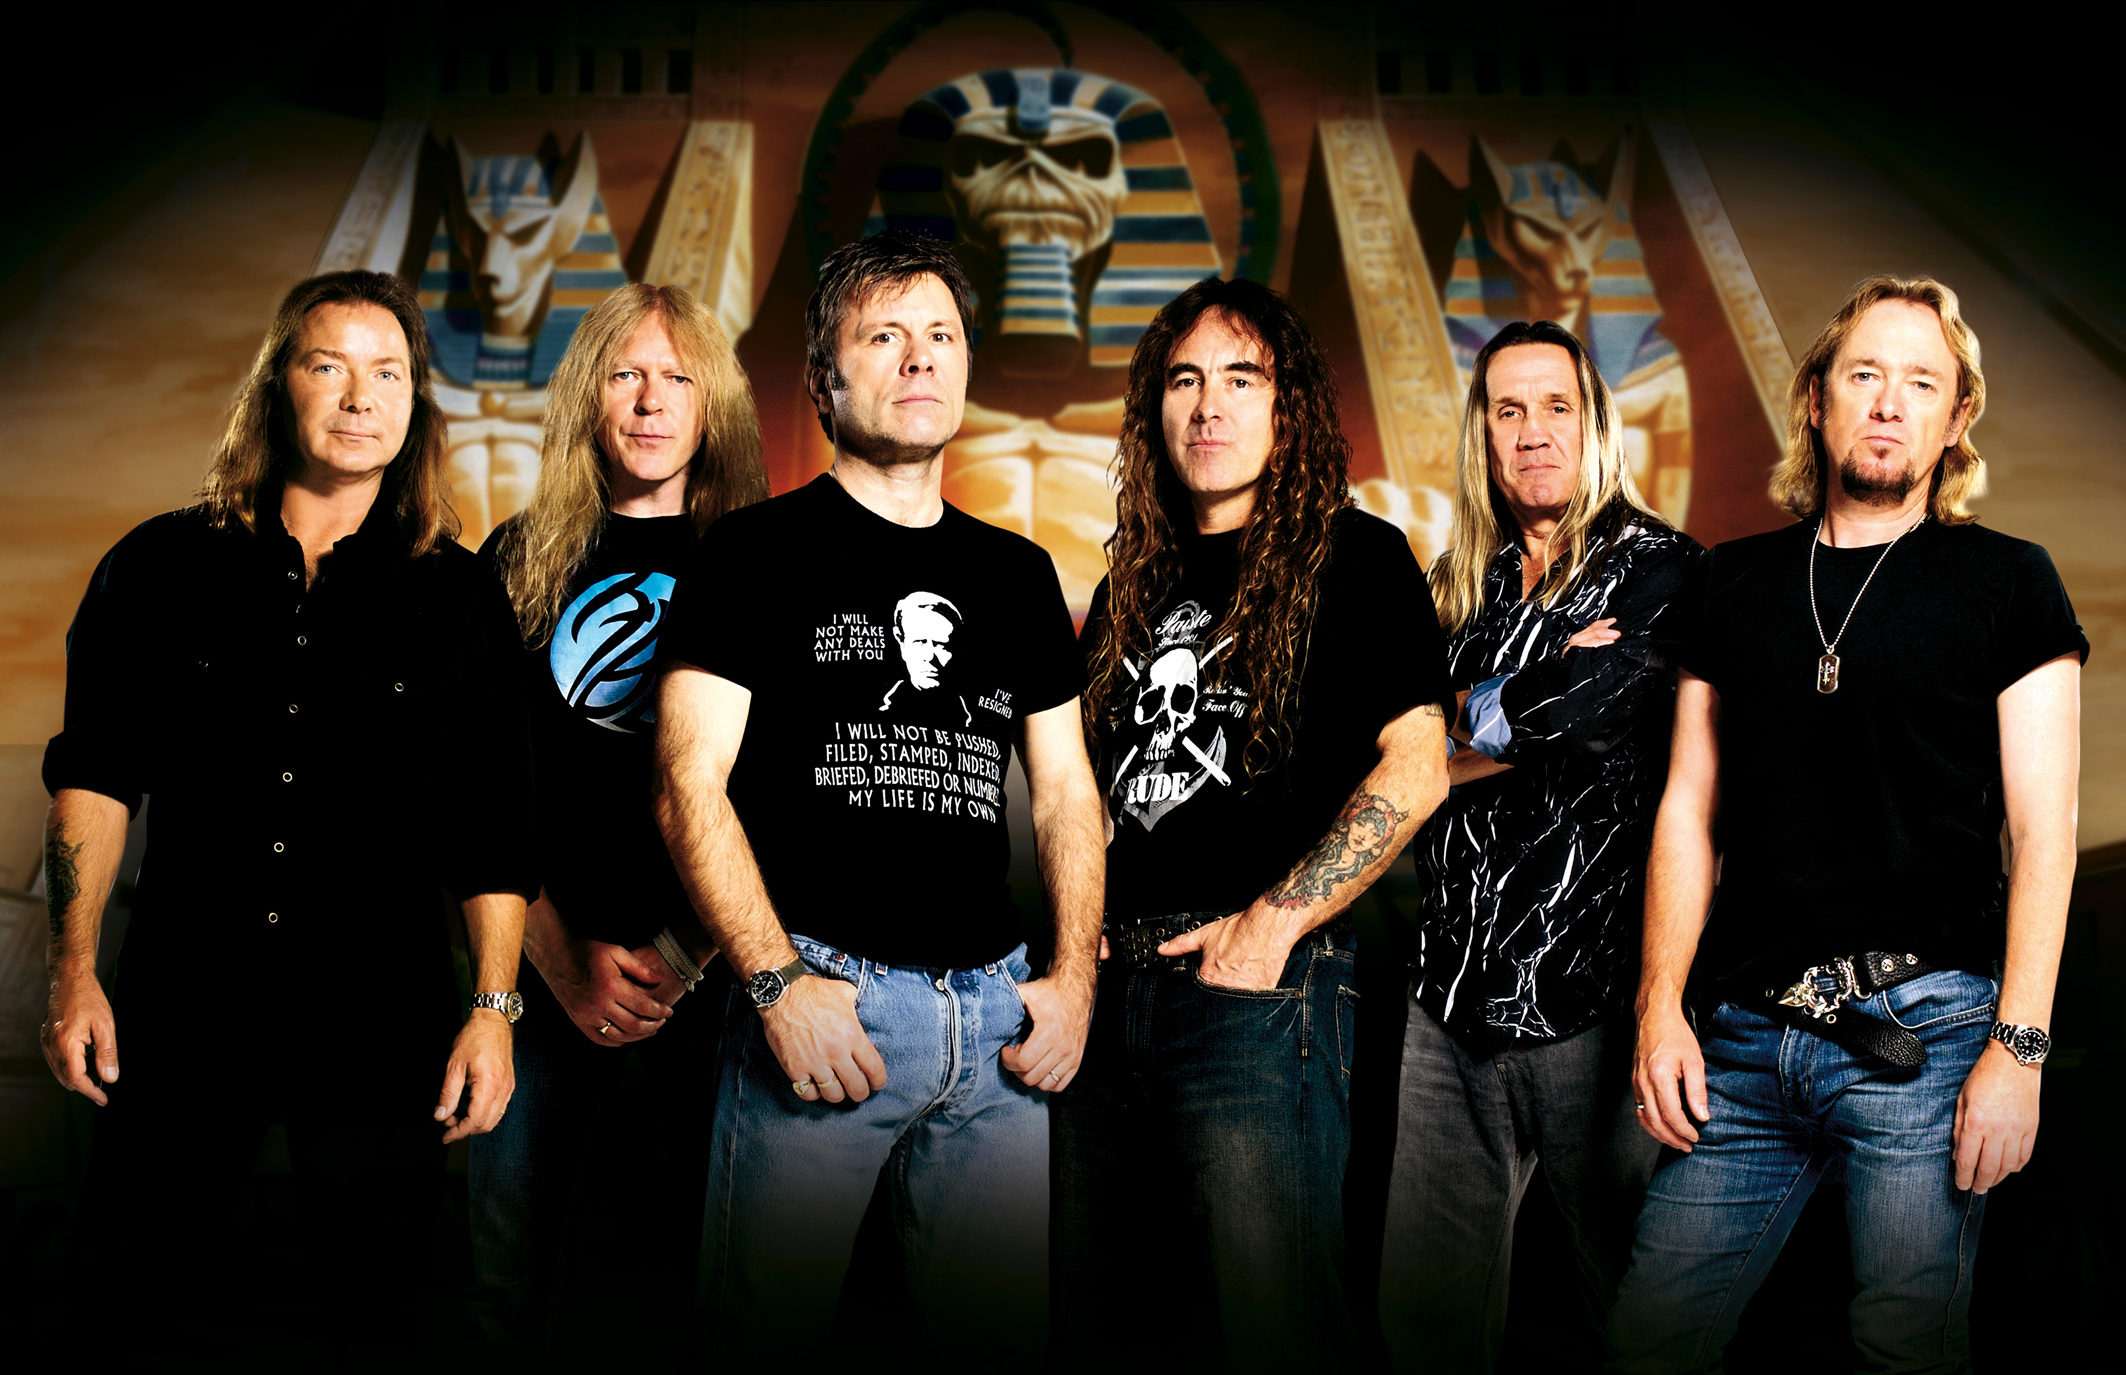 Best Songs of Iron Maiden _ [higher than 1000 kbps sound quality]